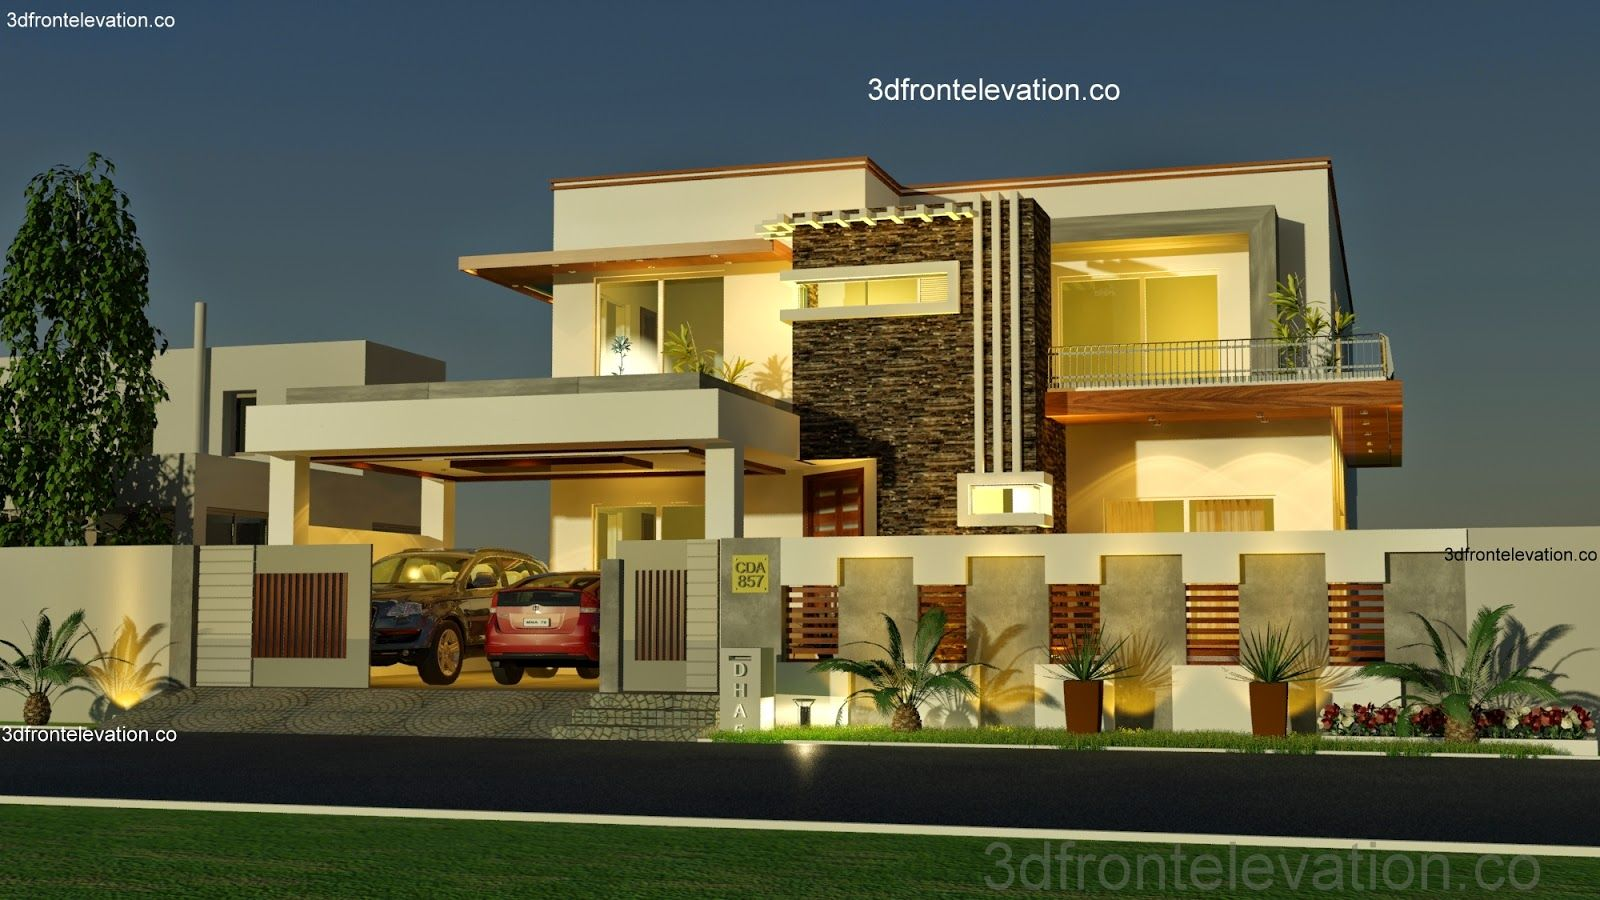 Modern house front elevation designs buscar con google for Modern house front design